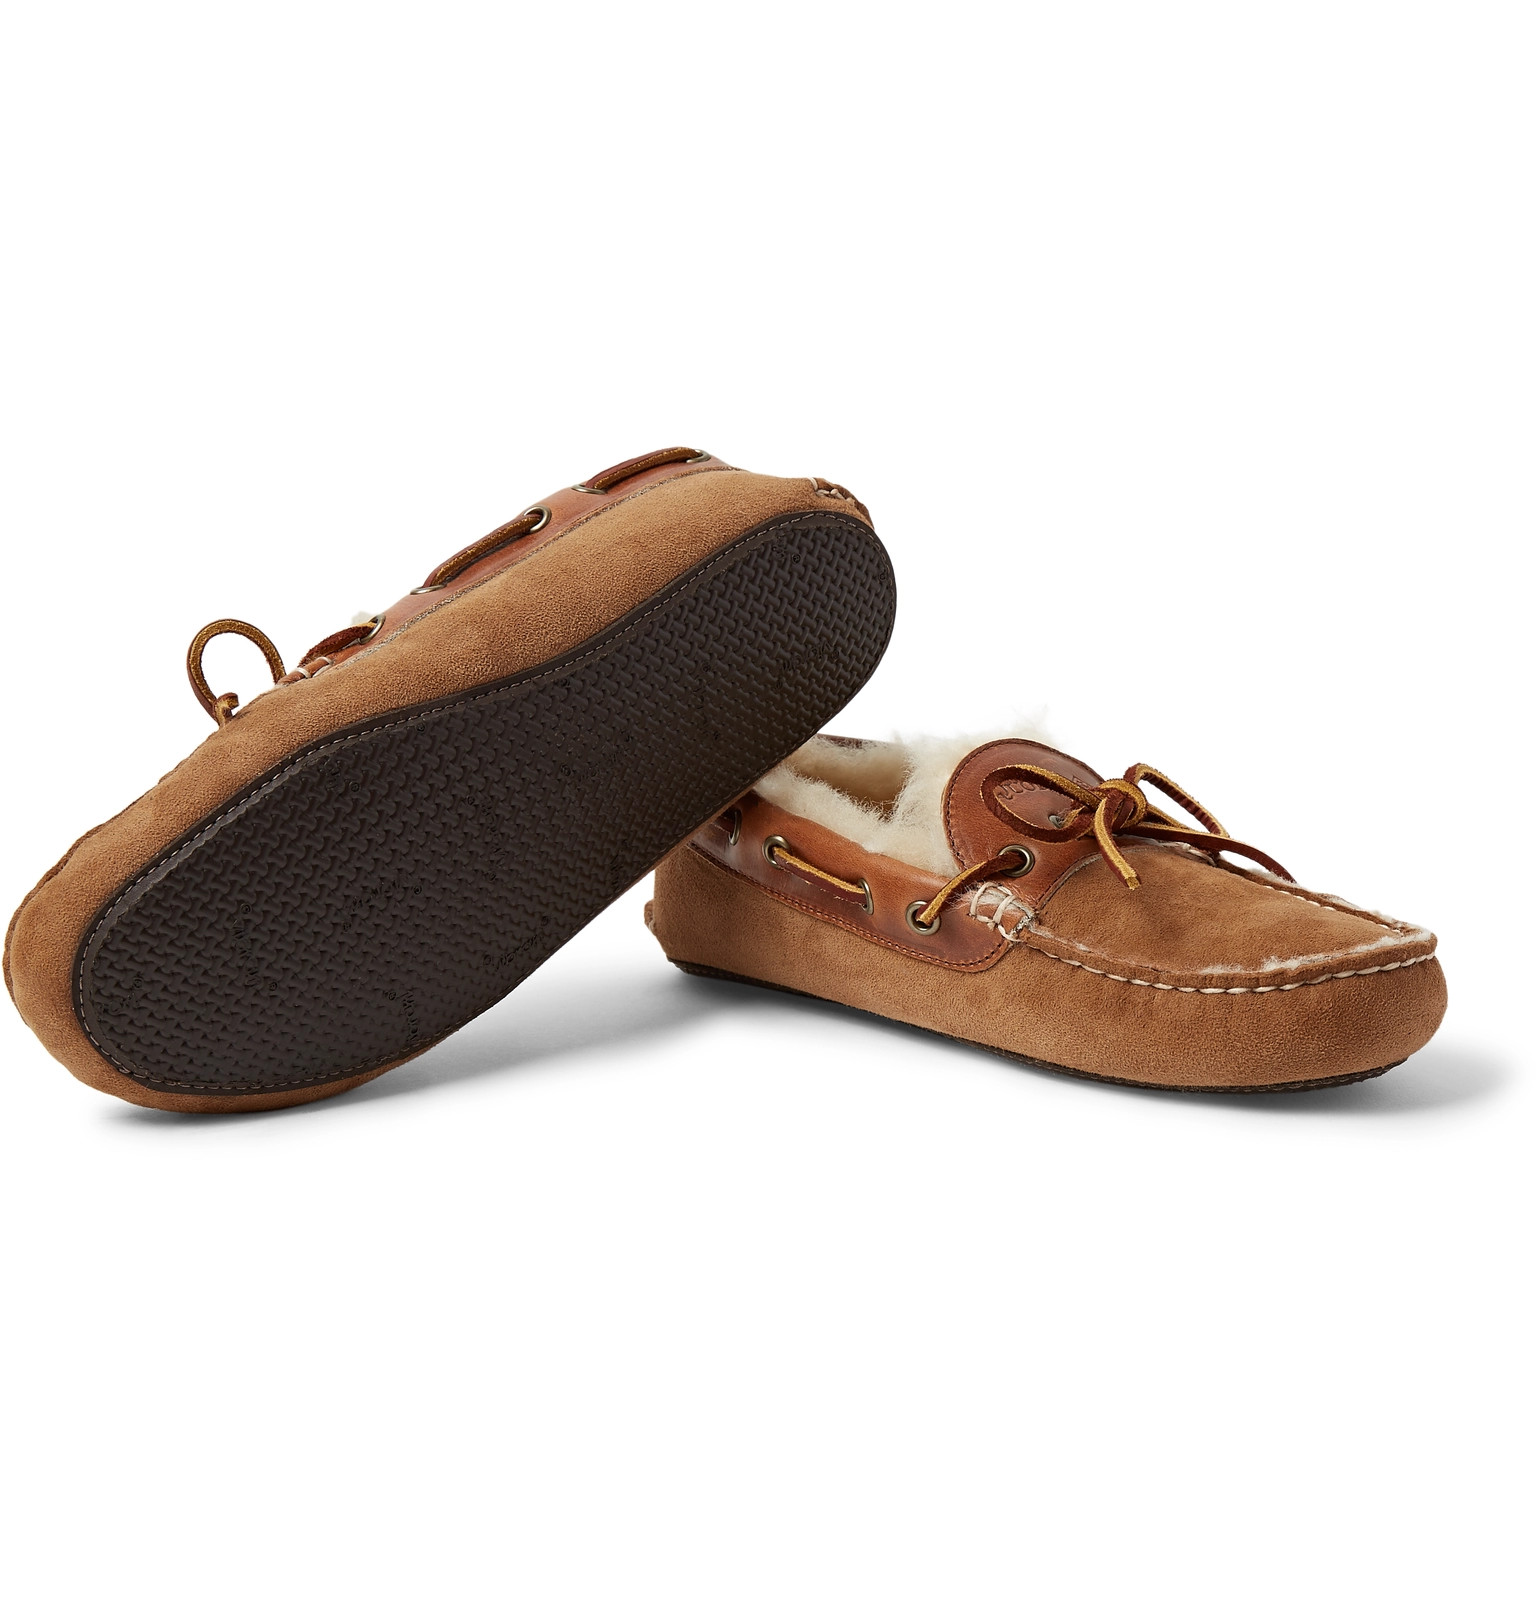 4f9d44033c0 Quoddy - Fireside Leather-Trimmed Shearling-Lined Suede Slippers